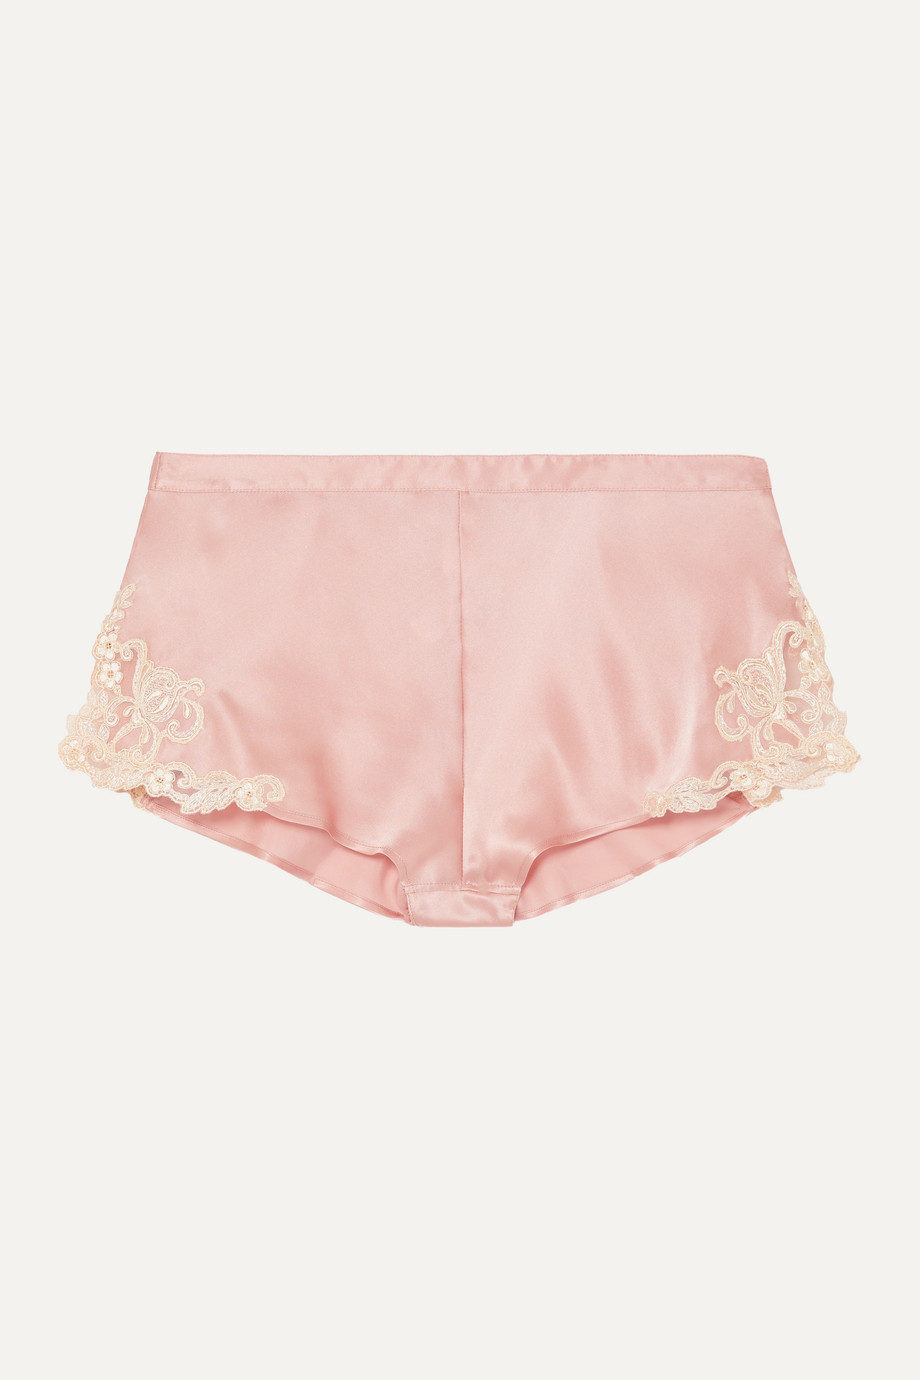 LA PERLA Maison embroidered lace-trimmed silk-blend satin shorts